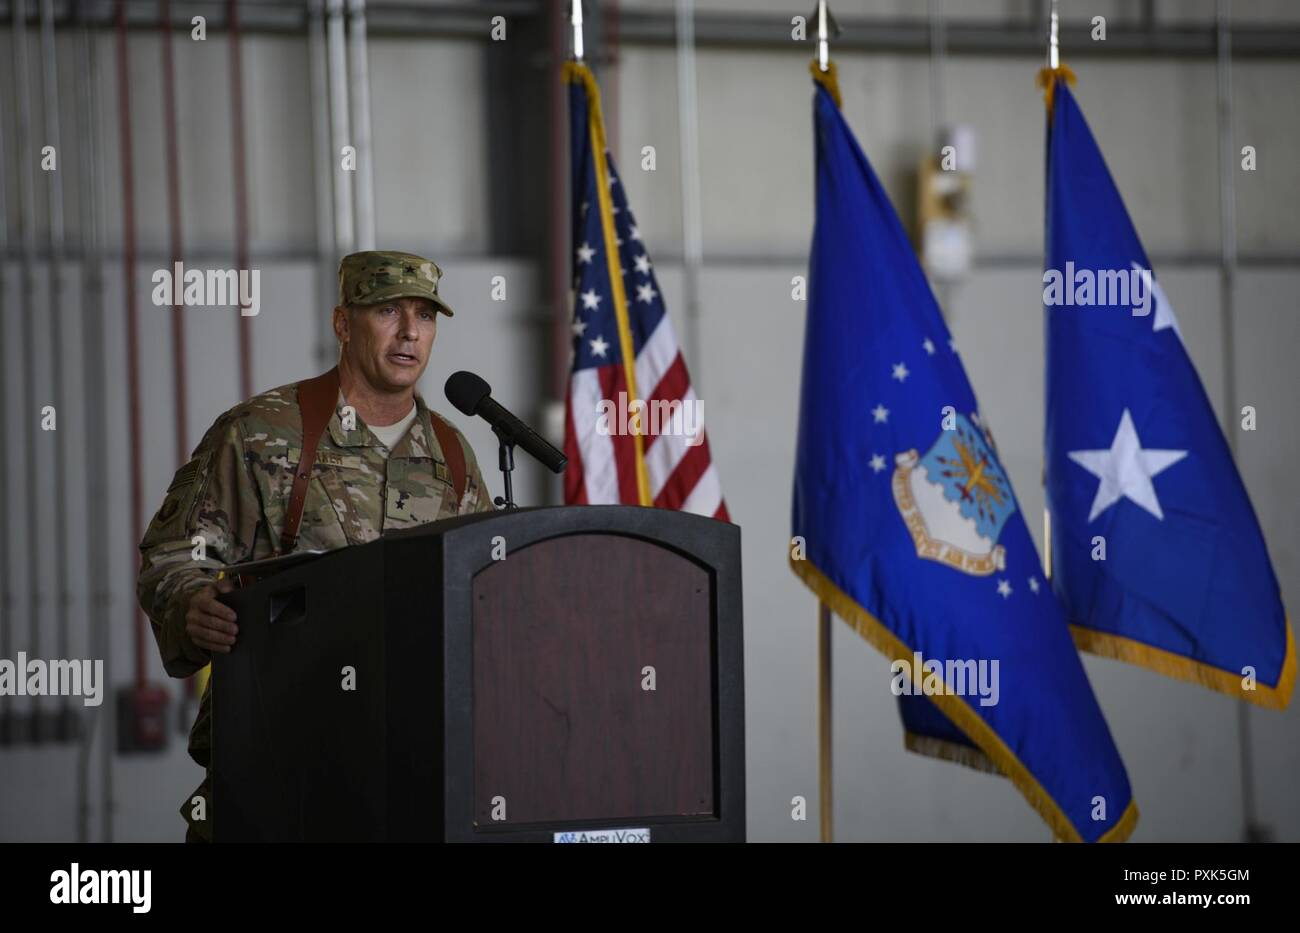 Brig. Gen. Craig Baker, the 455th Air Expeditionary Wing commander, speaks to 455th AEW Airmen and distinguished guests during a change of command ceremony at Bagram Airfield, Afghanistan, June 3, 2017. As the commander of the 455th AEW, Baker will lead the premier counterterrorism air mission in Afghanistan. The wing's operations enable the NATO Resolute Support mission to successfully train, advise, and assist the military and security forces of Afghanistan, while restricting and deterring the terrorist threat in the region. Stock Photo